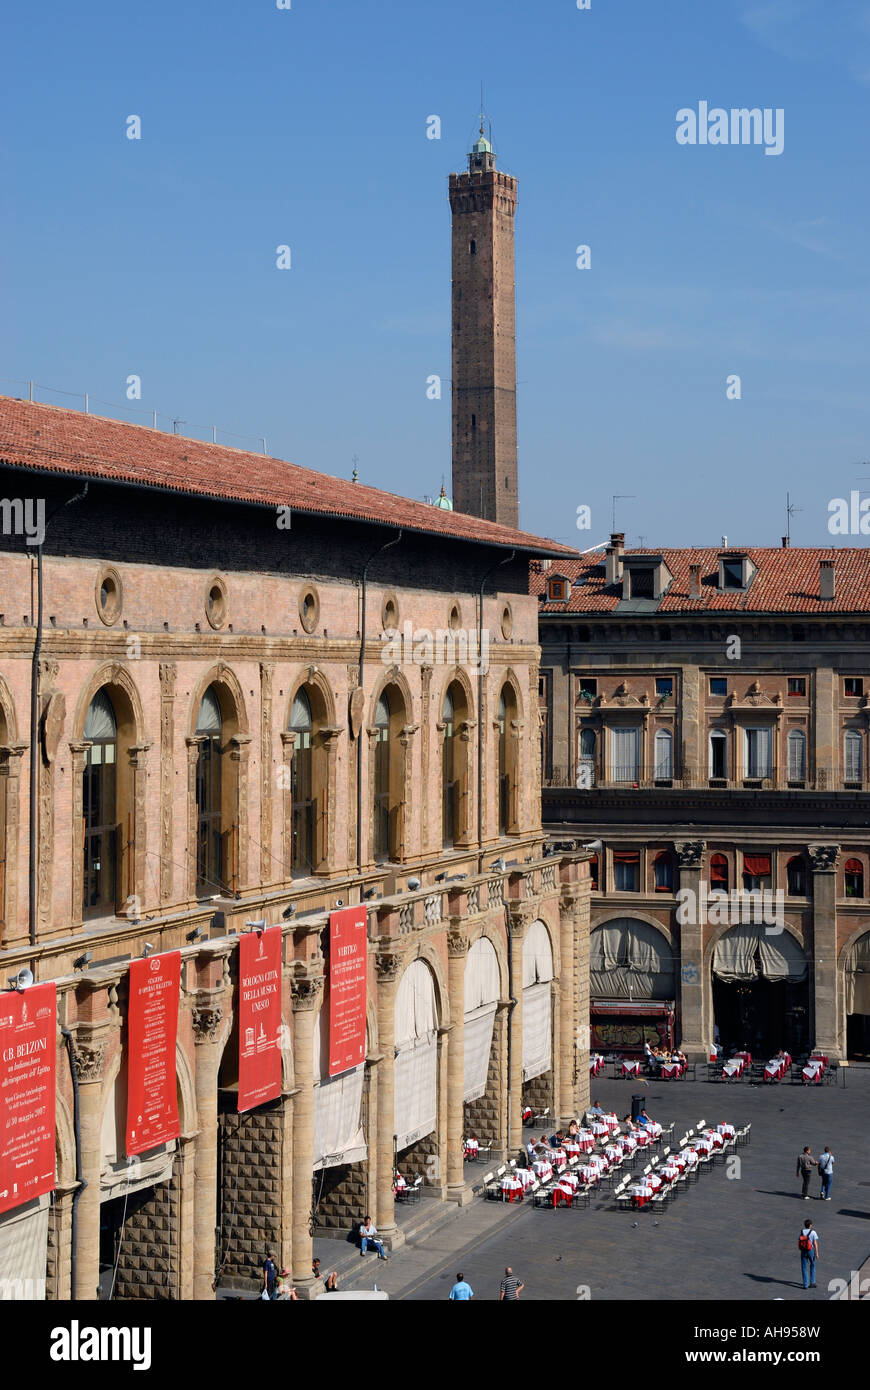 Piazza Maggiore towards Palazzo Re Enzo and Asinelli Tower, Bologna, Italy Stock Photo